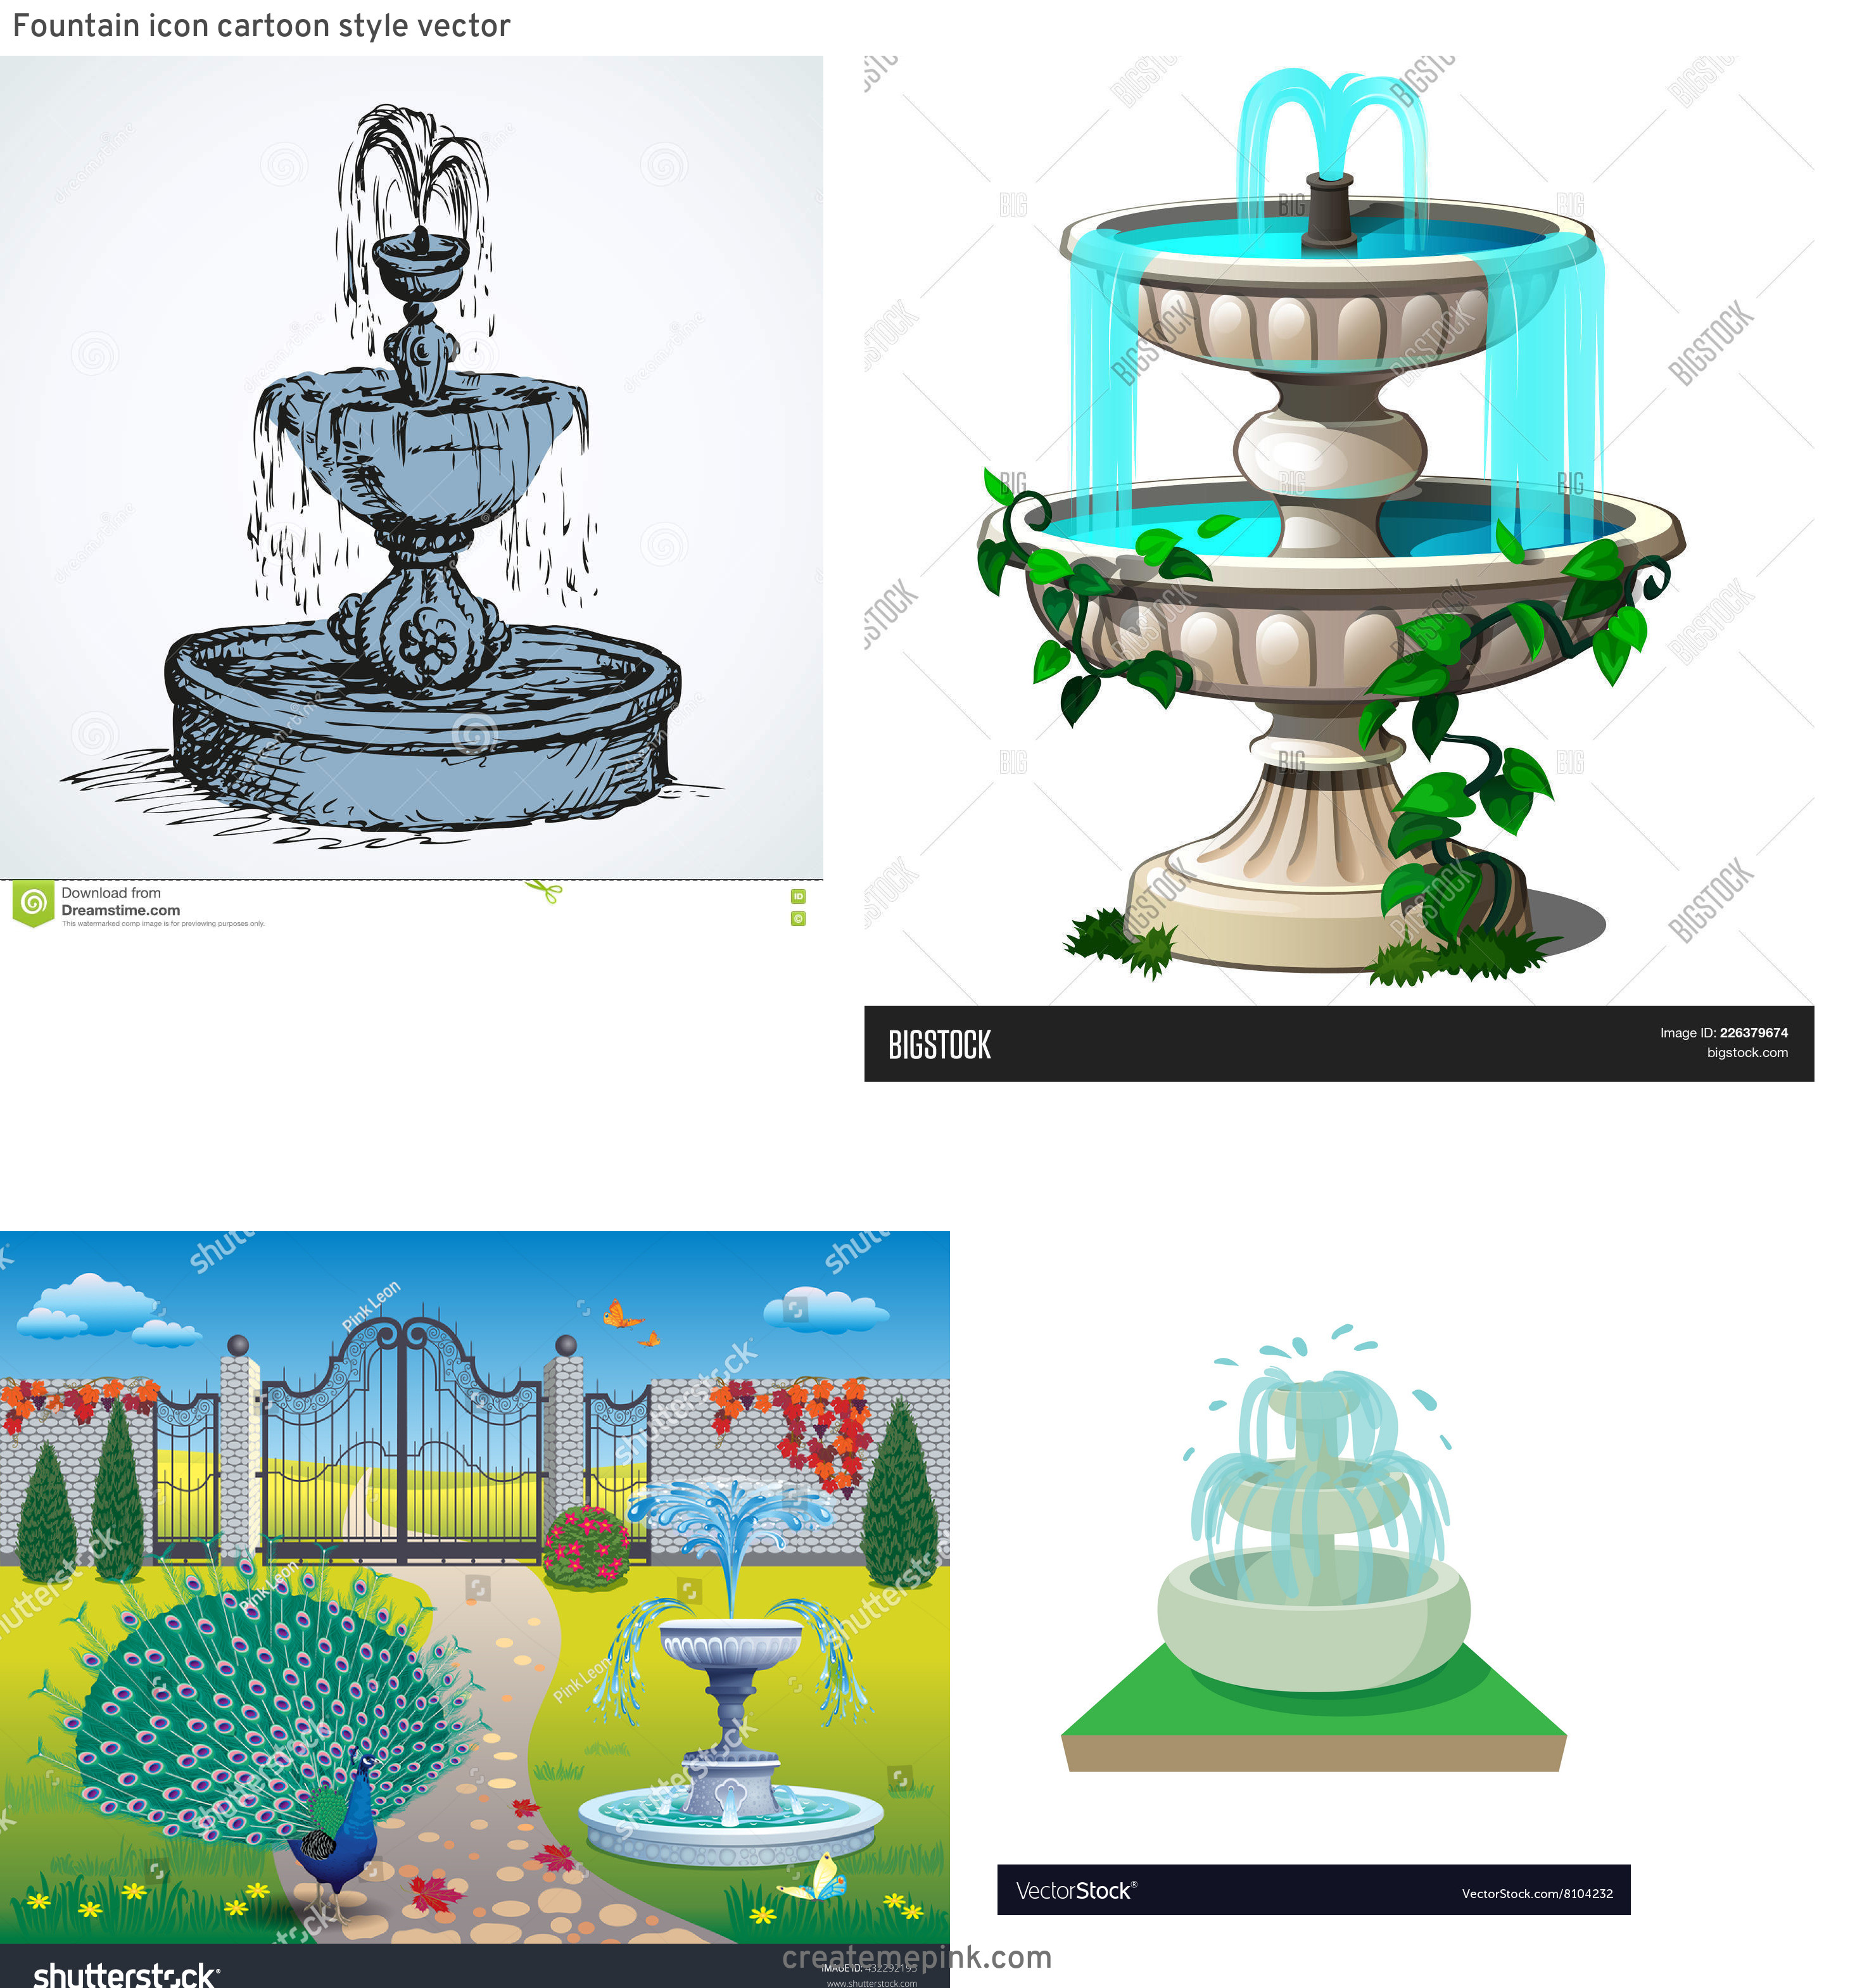 Pretty Fountain Vectors: Fountain Icon Cartoon Style Vector